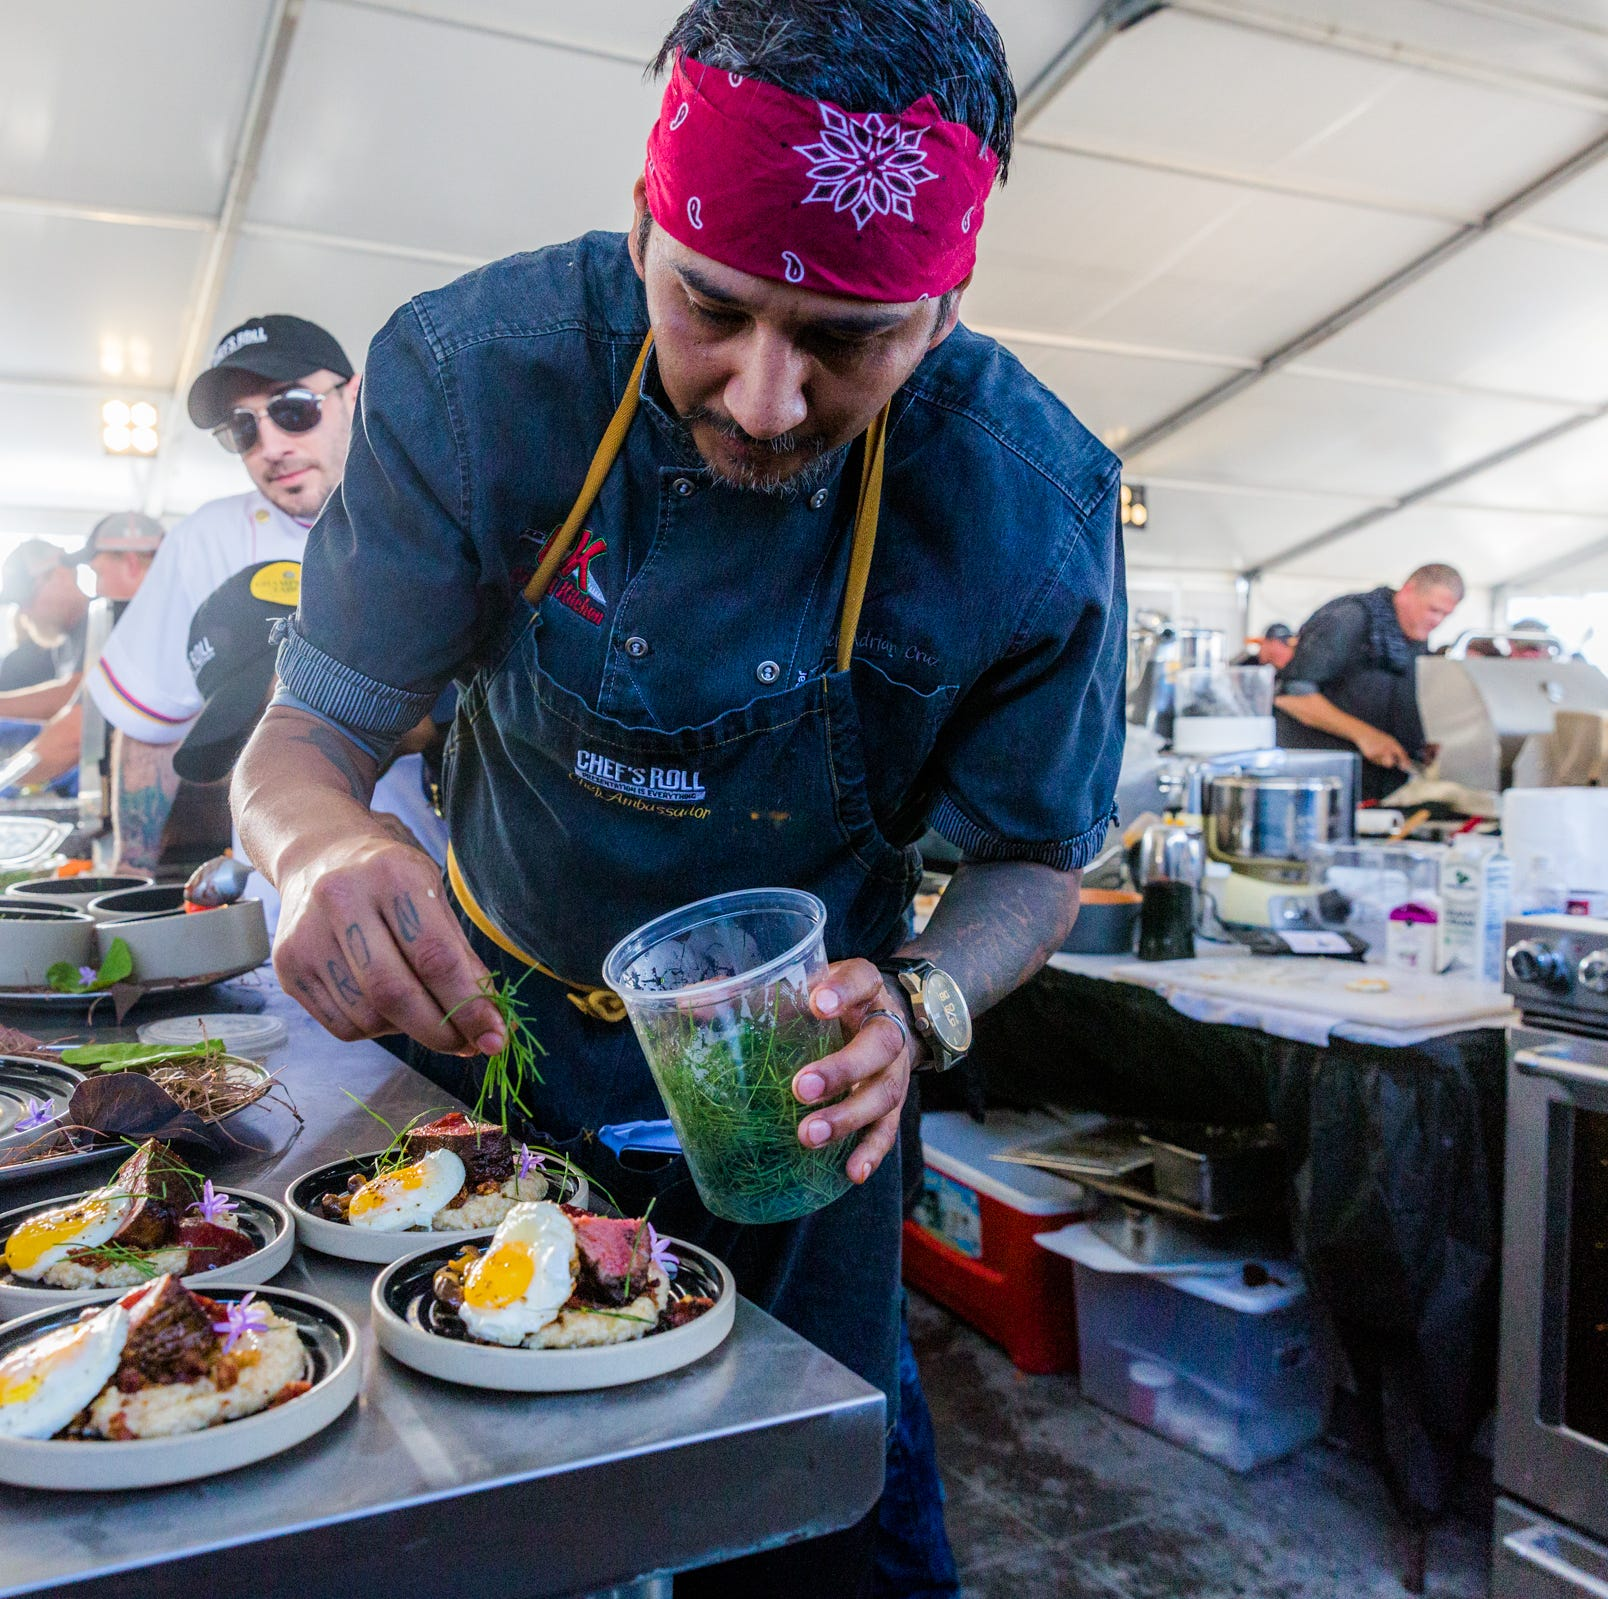 Need a reason to attend world's largest food fight? How about a baker's dozen!